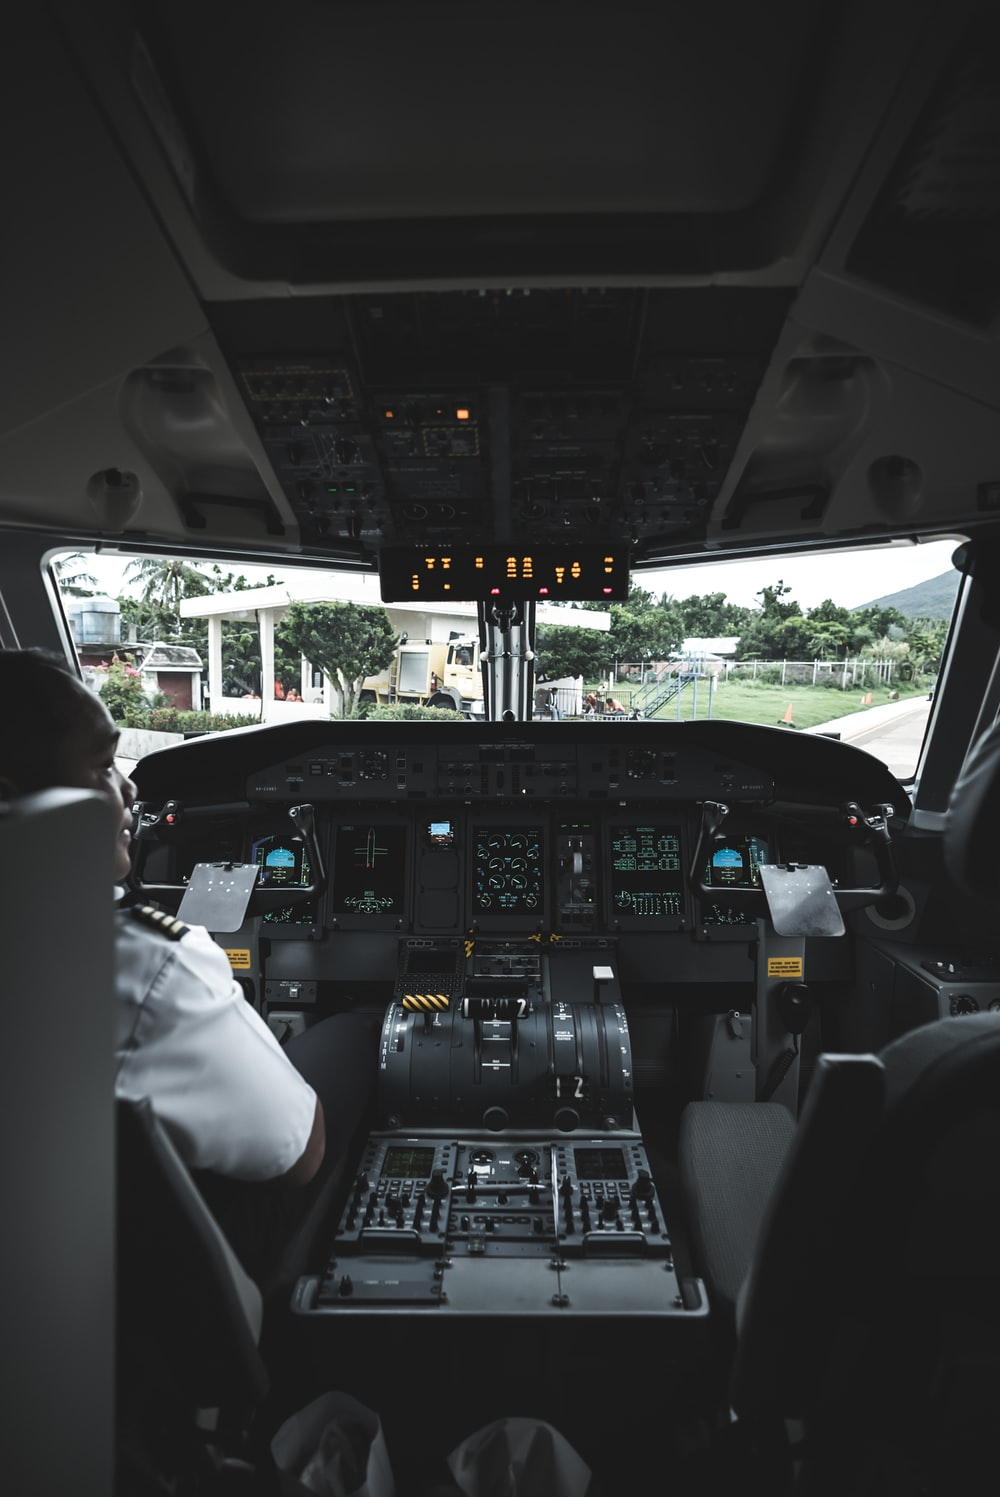 pilot inside operating the aircraft